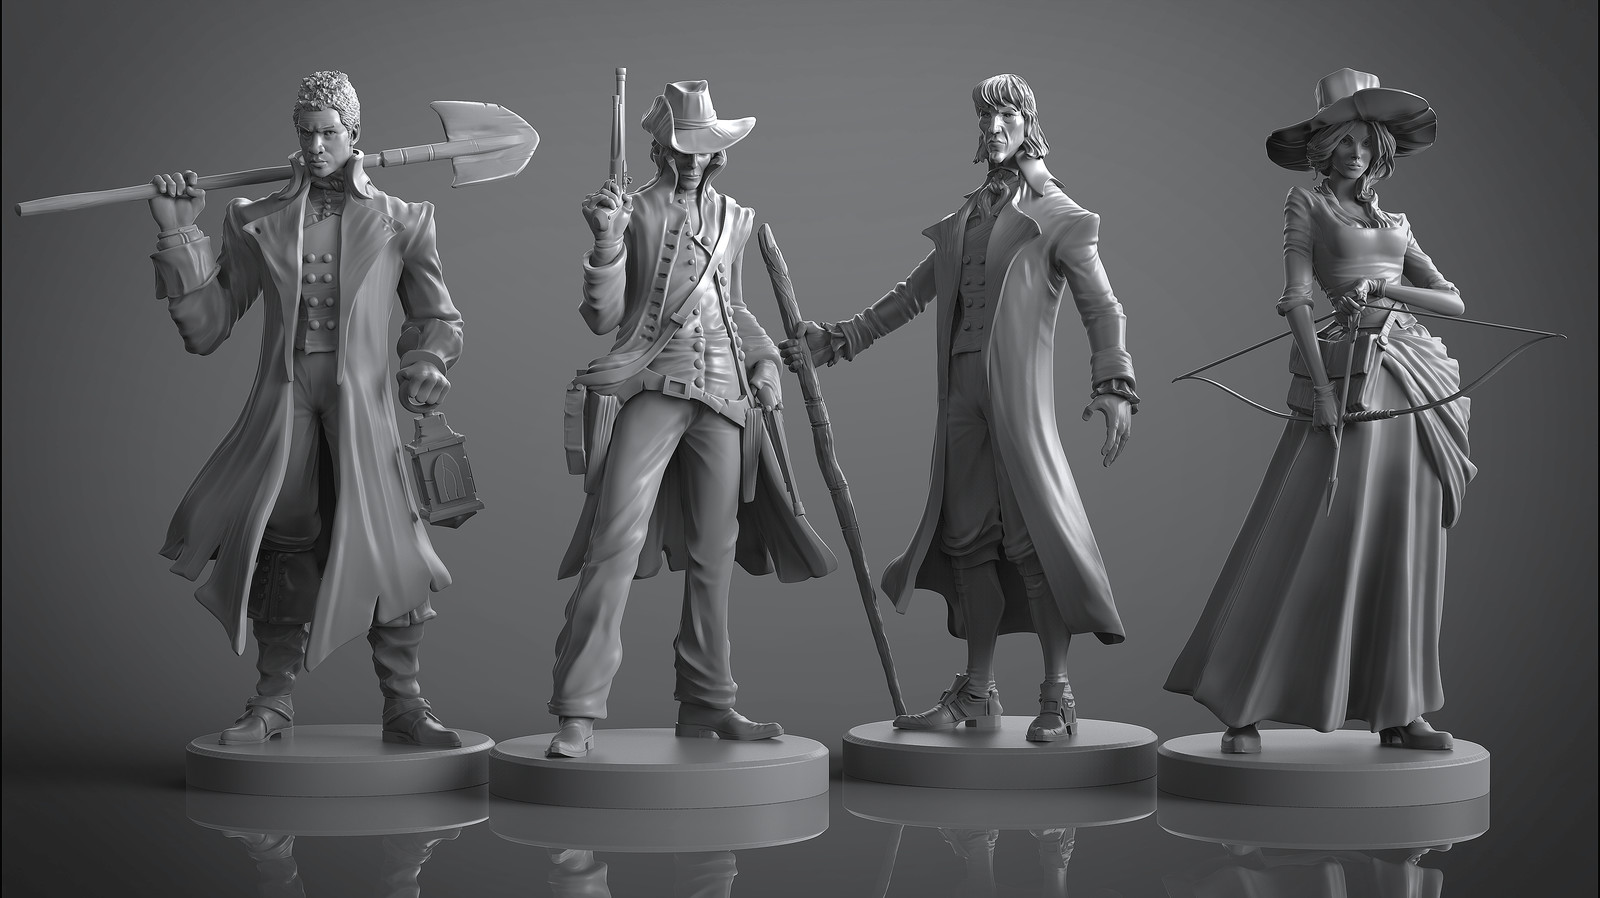 Legends of Sleepy Hollow board game miniatures